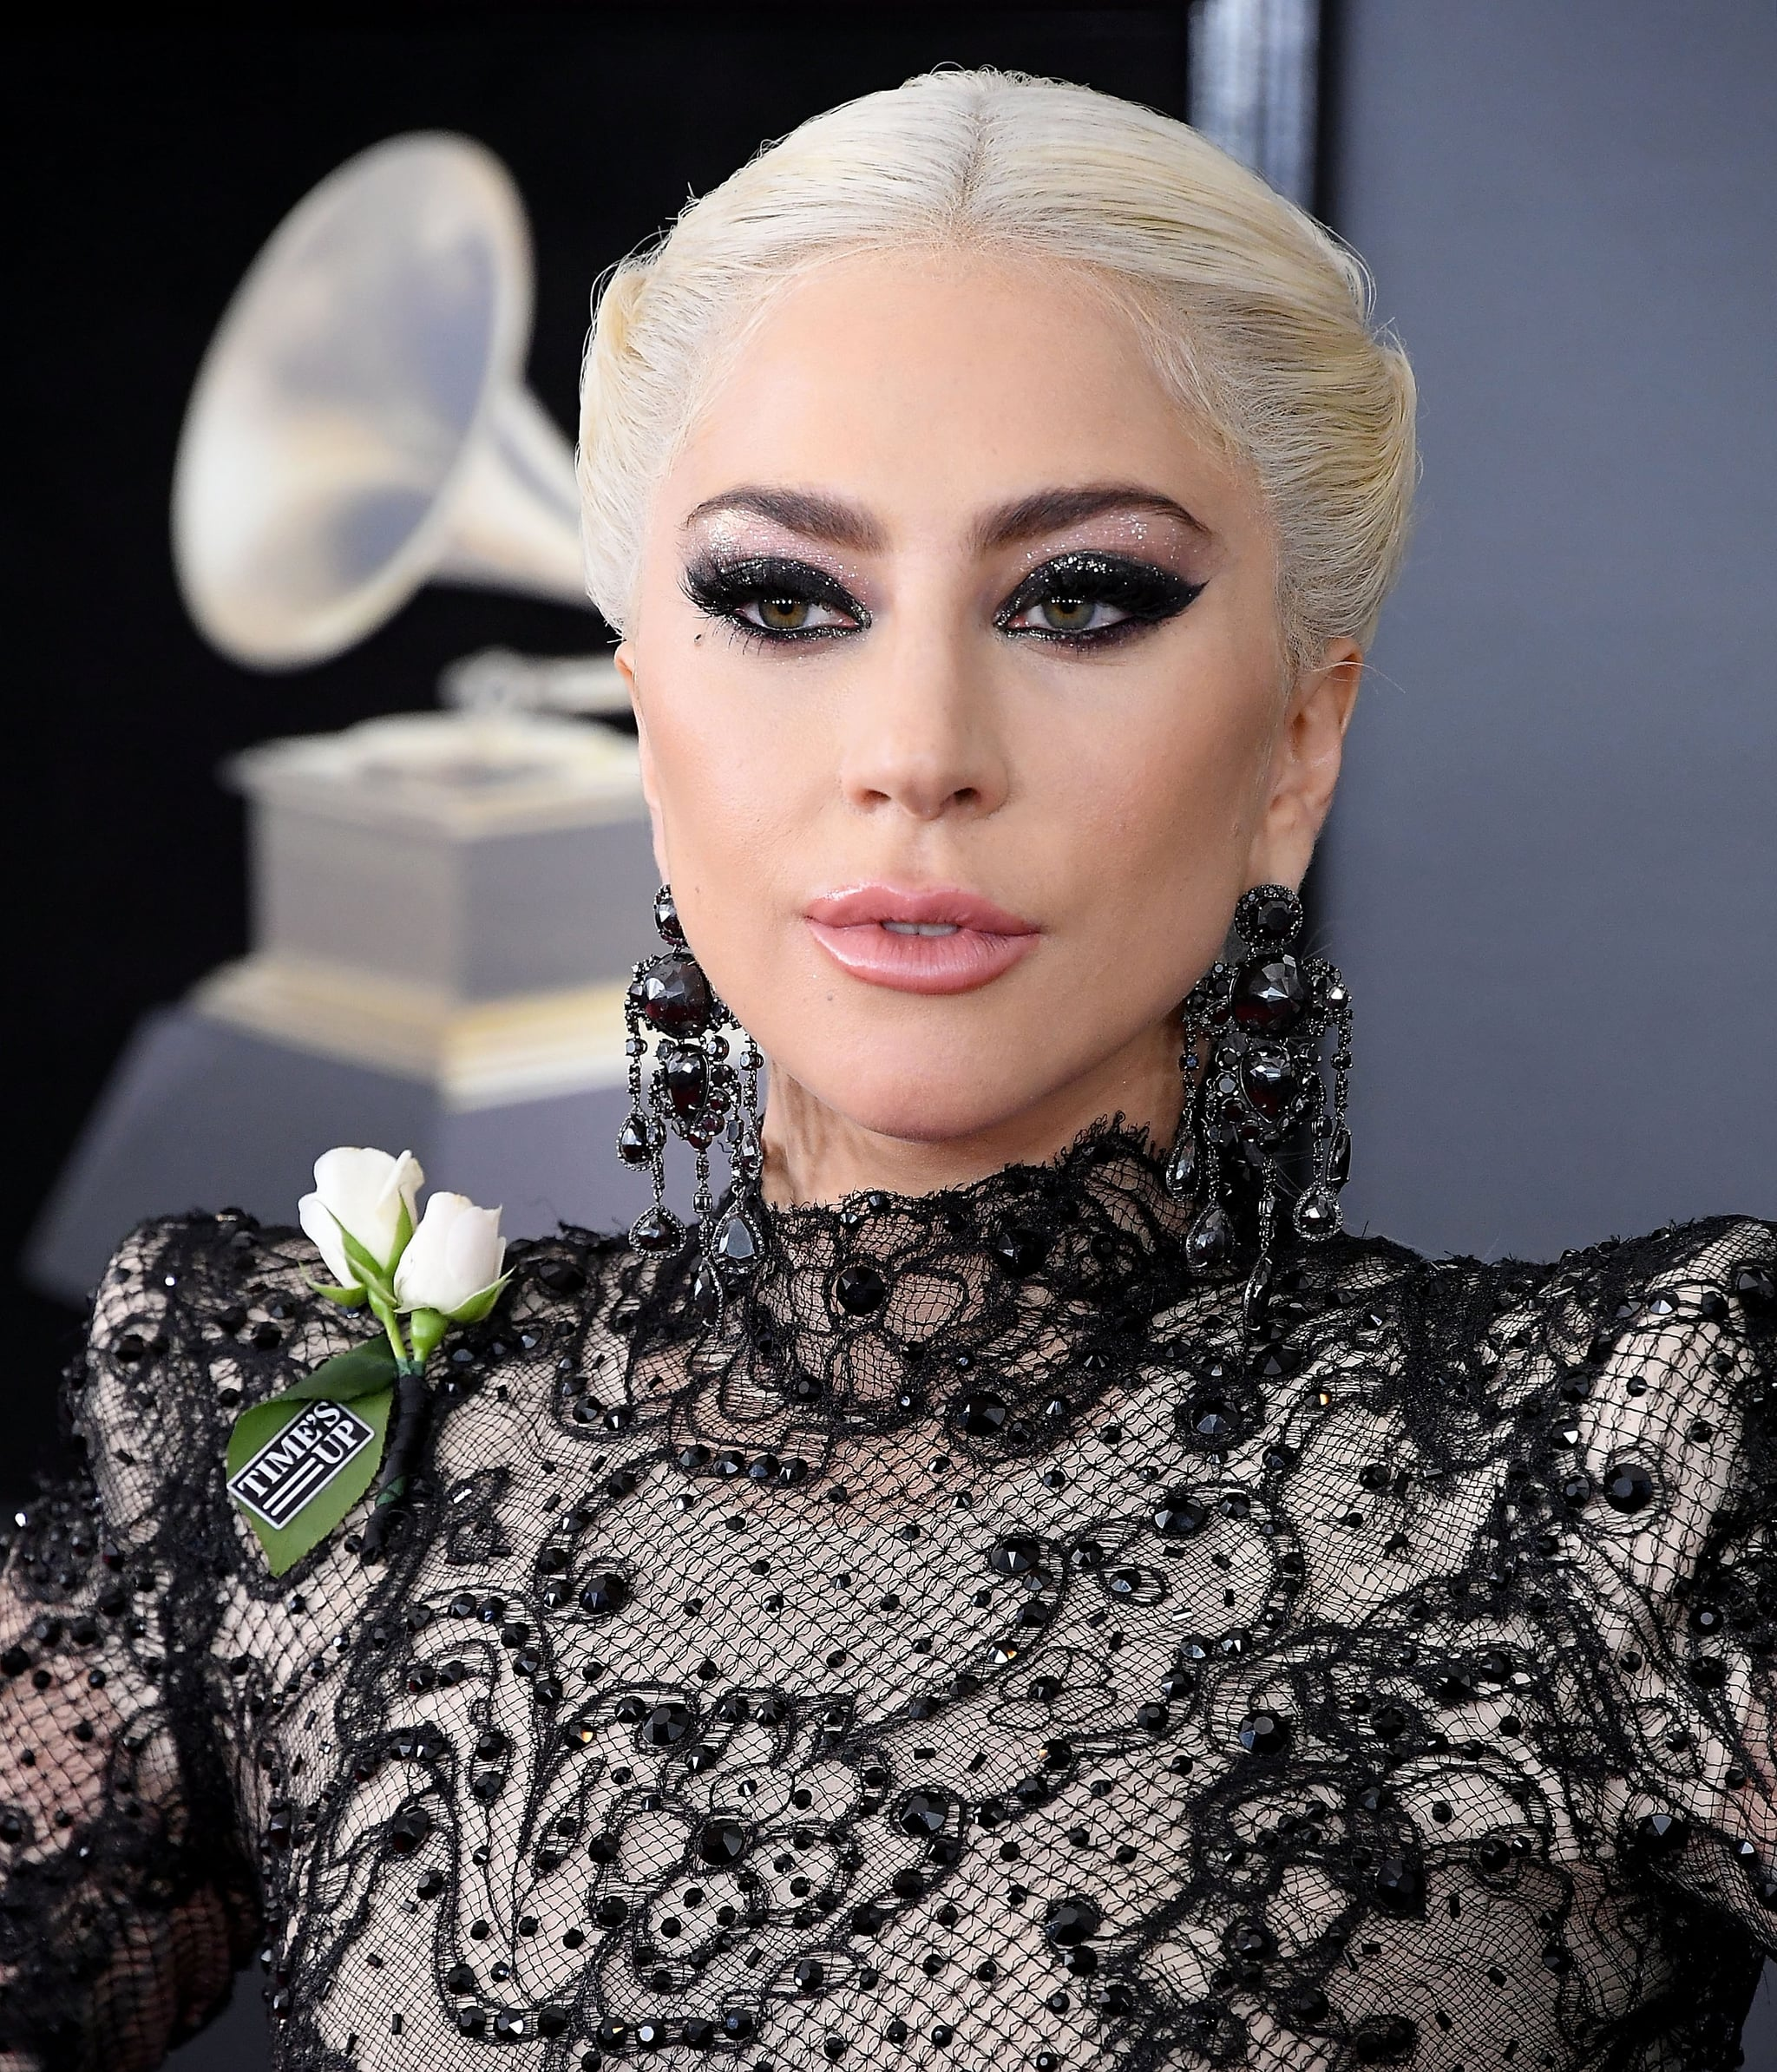 NEW YORK, NY - JANUARY 28:  Lady Gaga arrives at the 60th Annual GRAMMY Awards at Madison Square Garden on January 28, 2018 in New York City.  (Photo by Steve Granitz/WireImage)